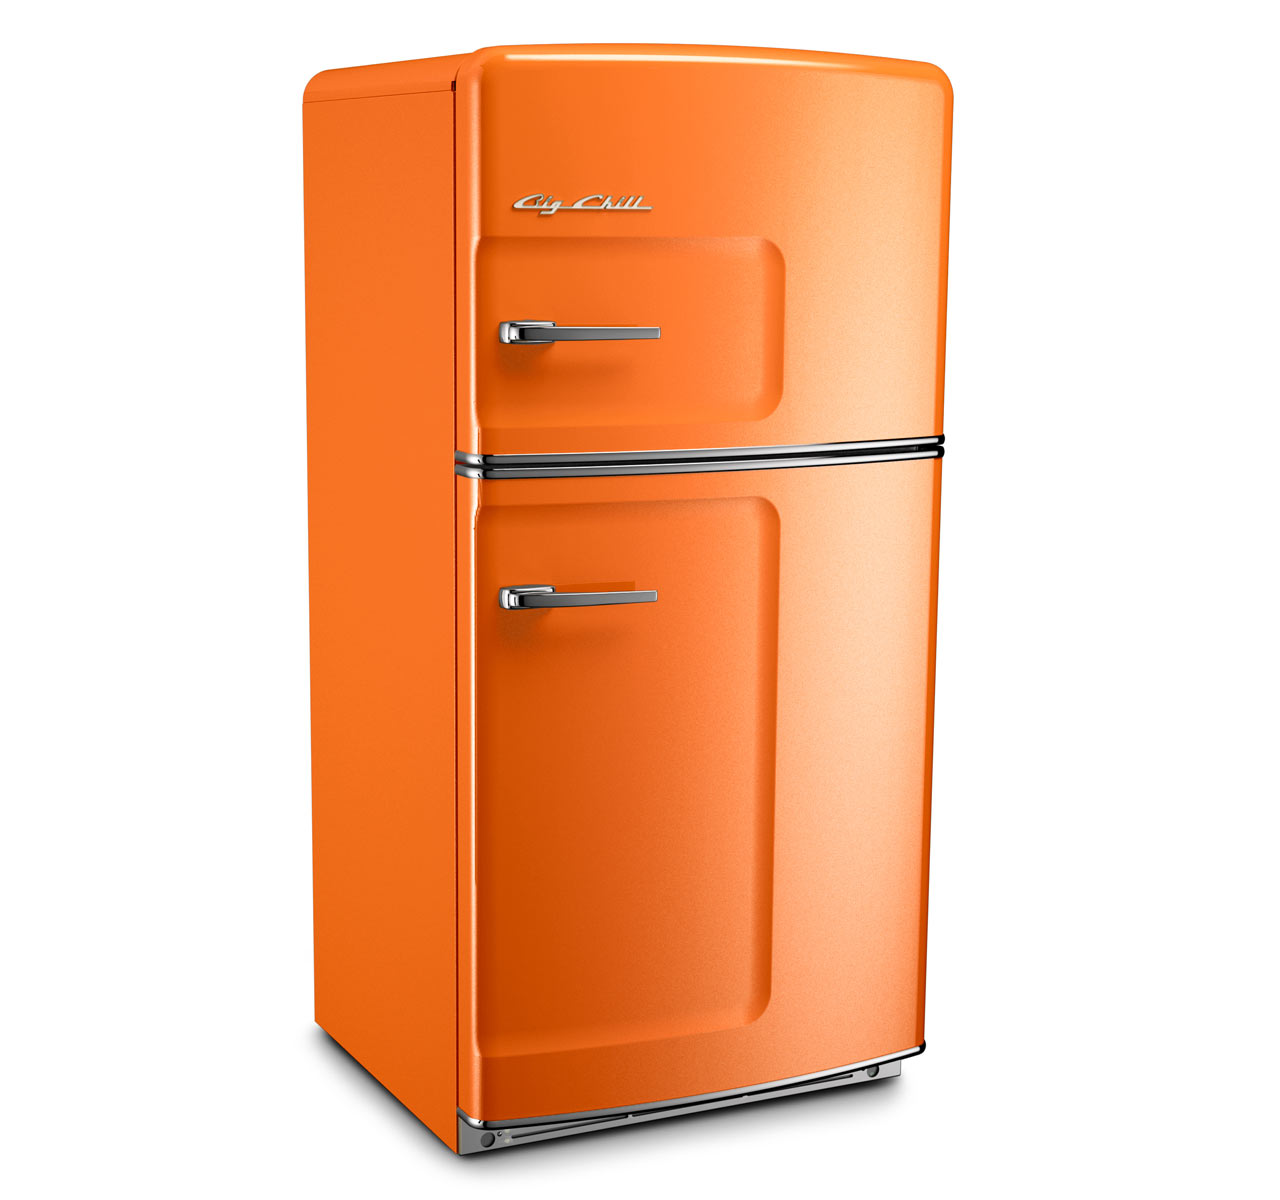 How Big Chill's Retro Fridge Came To Be